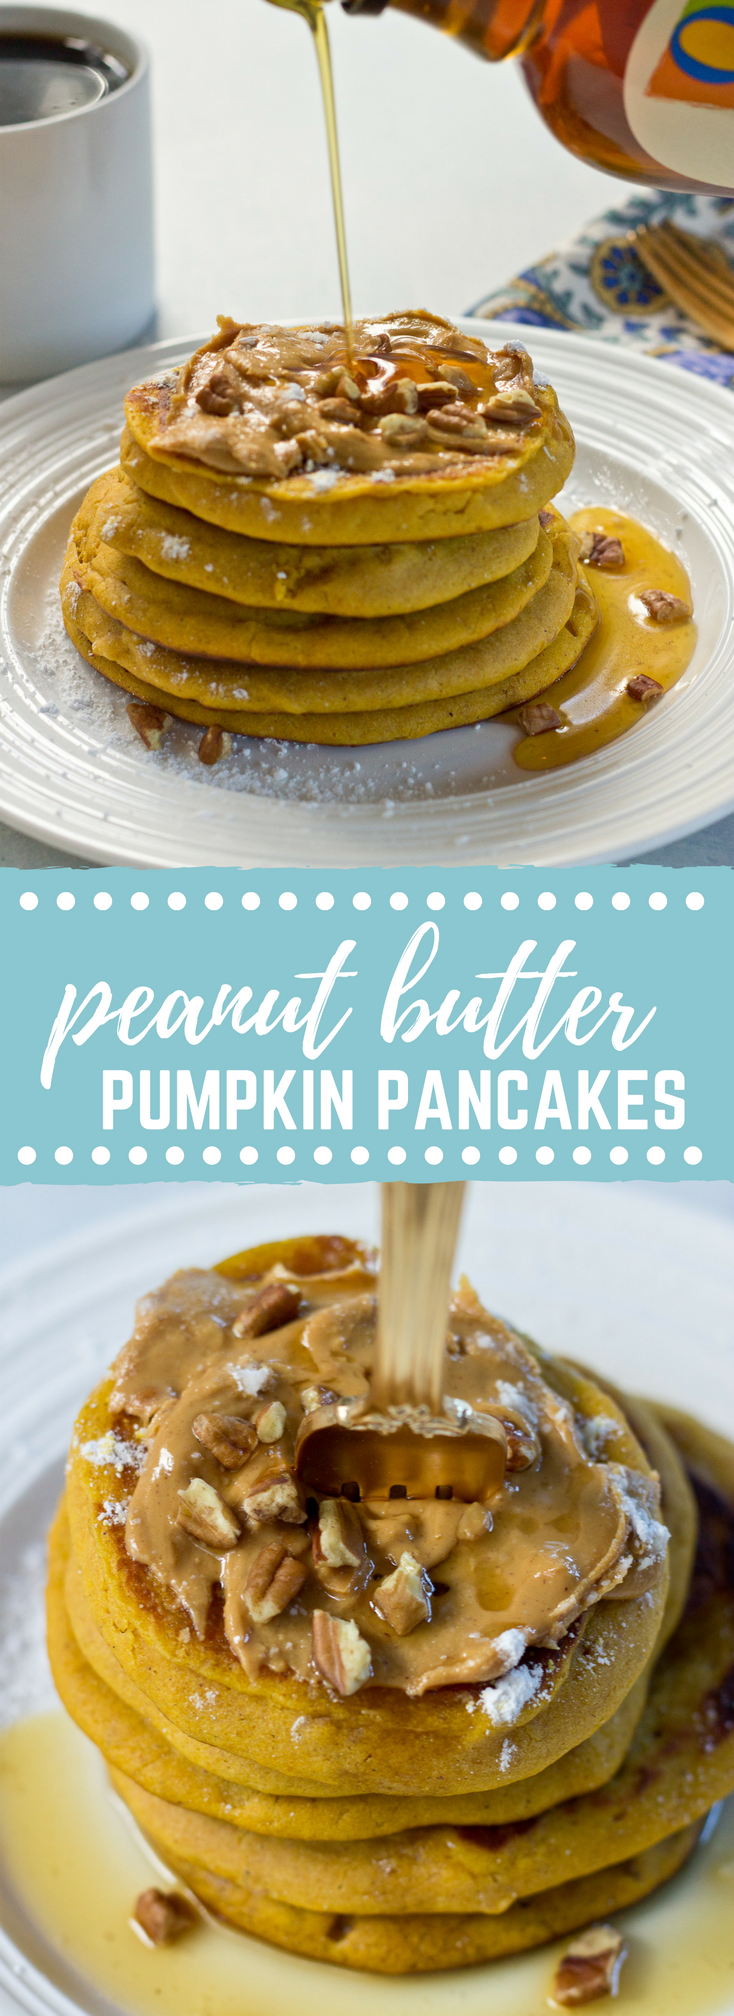 Peanut Butter Pumpkin Pancakes, need I say more? Get in my belly already! Super easy recipe made with box pancake mix to simplify your mornings.